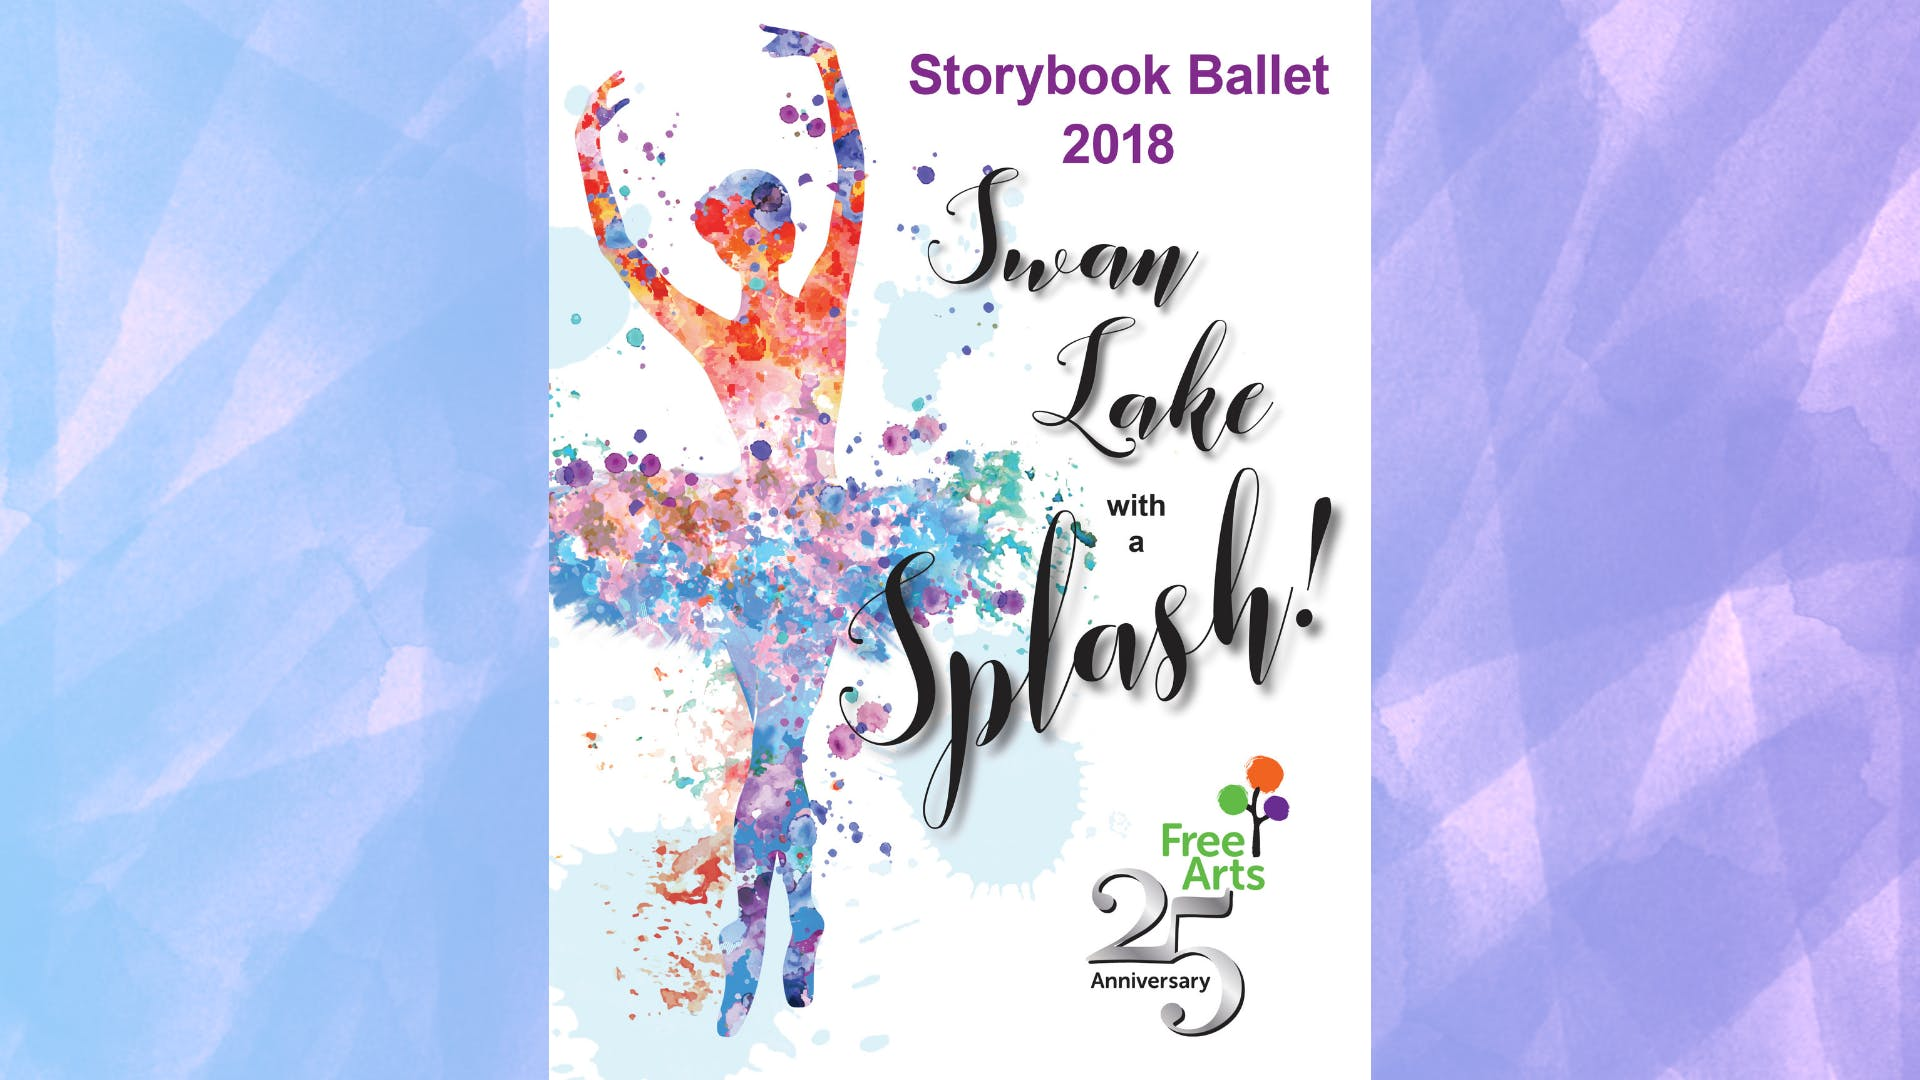 Storybook Ballet 2018 Swan Lake with a Splash!